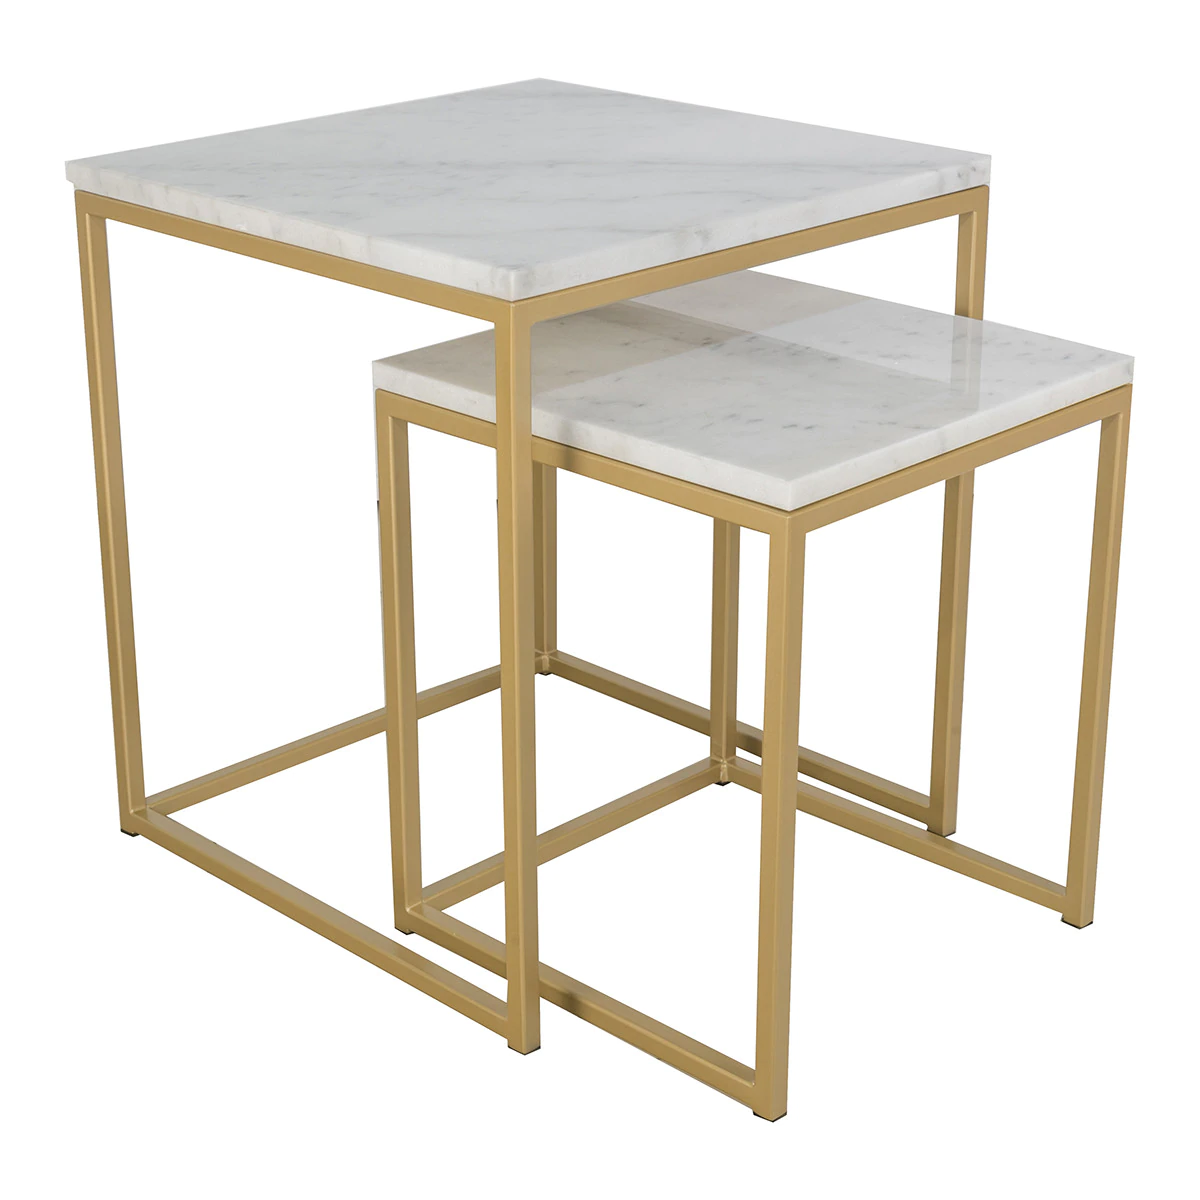 Set of two coffee tables